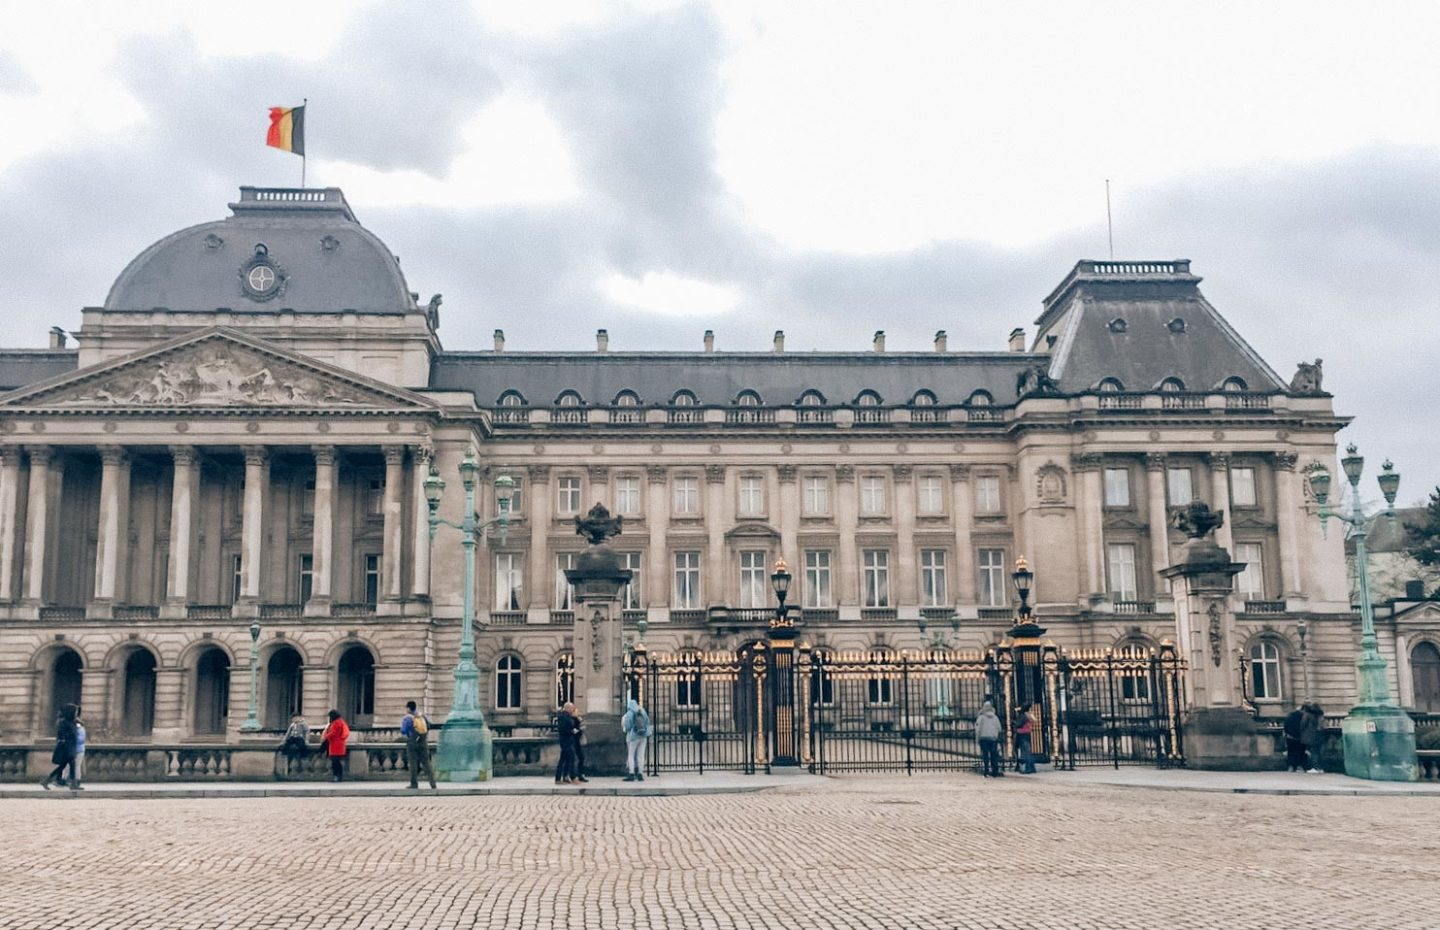 Visit the Royal Palace of Brussels